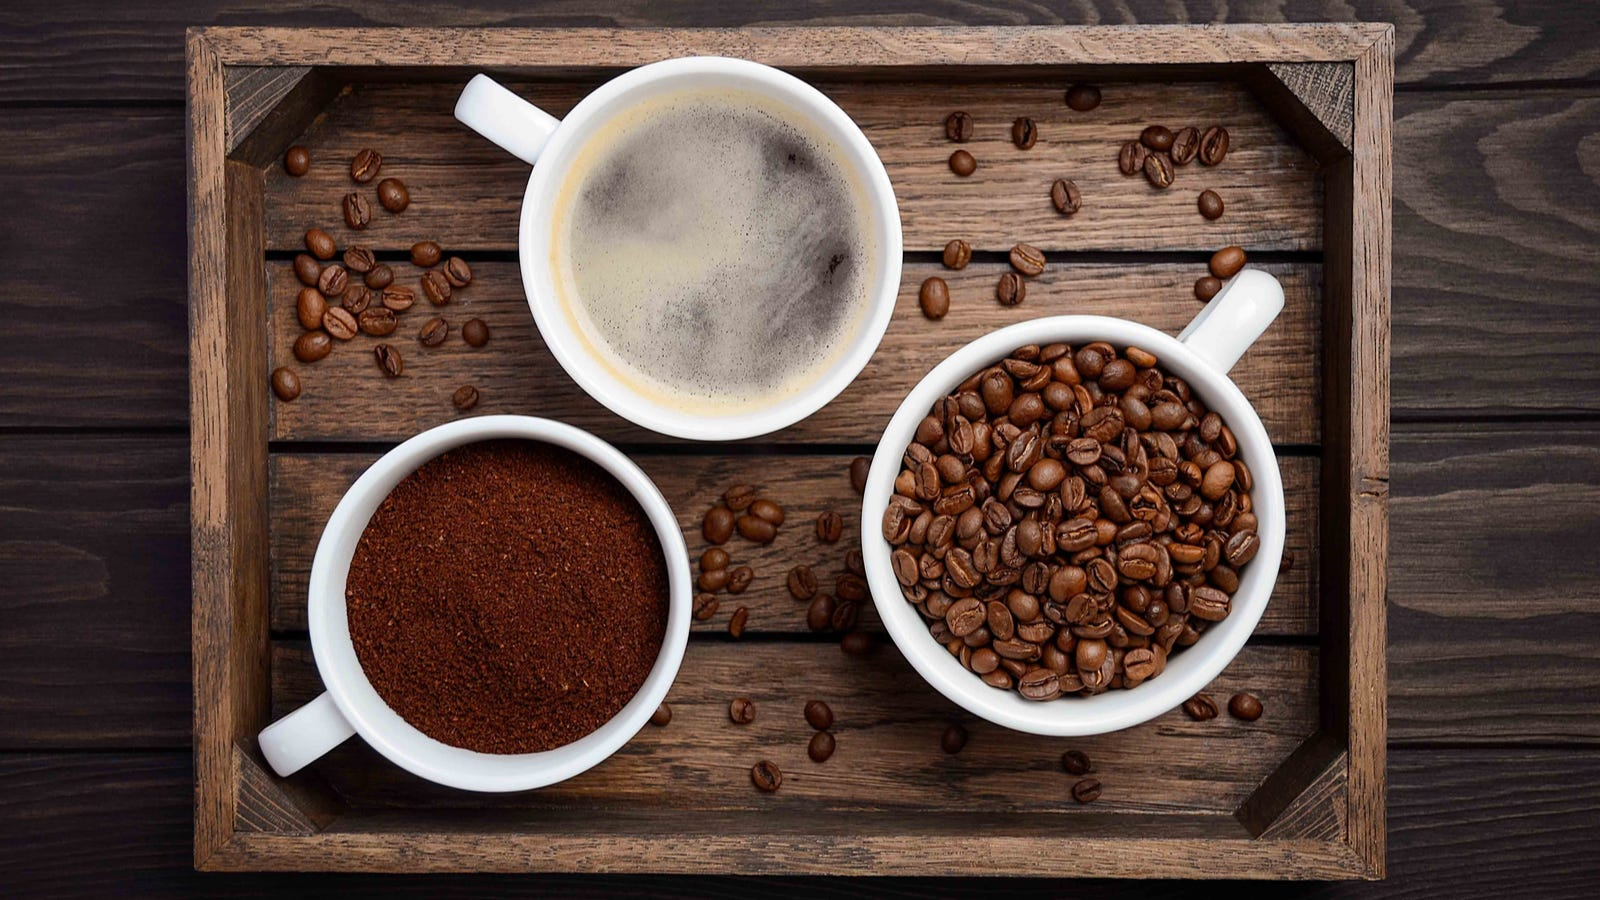 Whole coffee beans, ground coffee and a cup of hot brewed coffee placed on a rustic wooden tray with various beans spread on the tray.